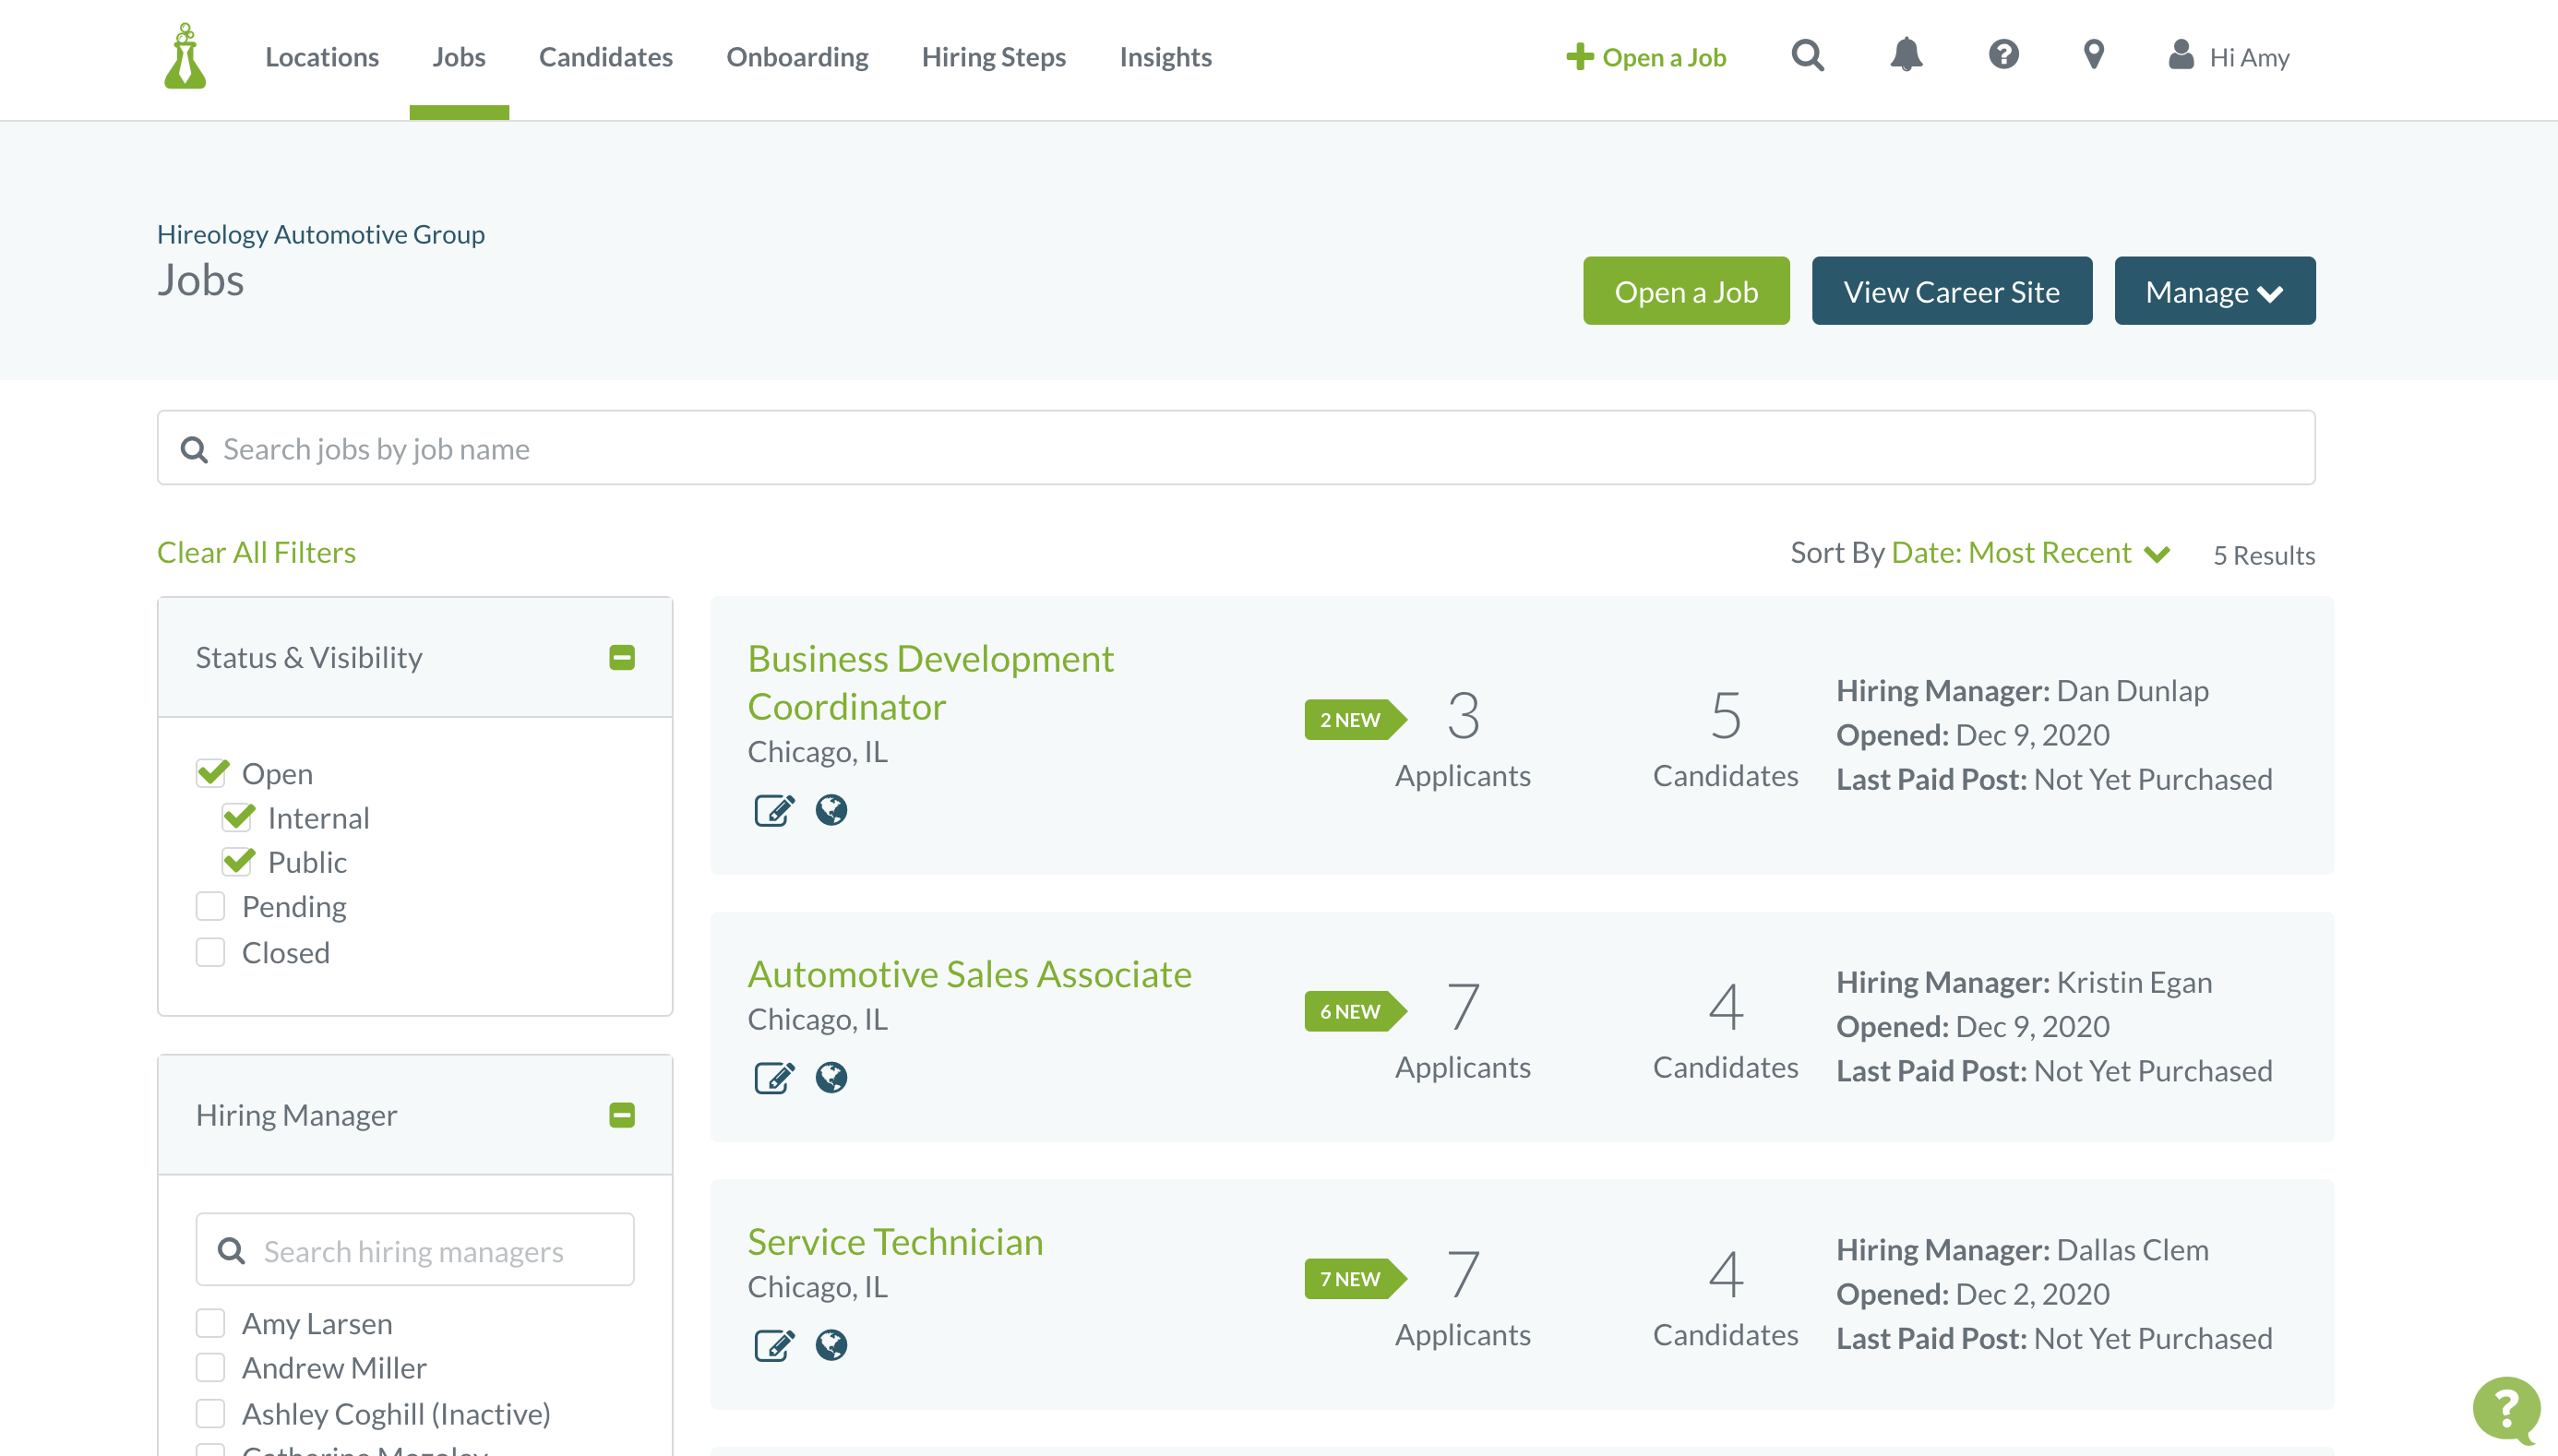 Hireology screenshot: View jobs across multiple teams, hiring managers or locations along with filter and search tools. Get at-a-glance job details like numbers of applicants and candidates, as well as the hiring manager and opening date.